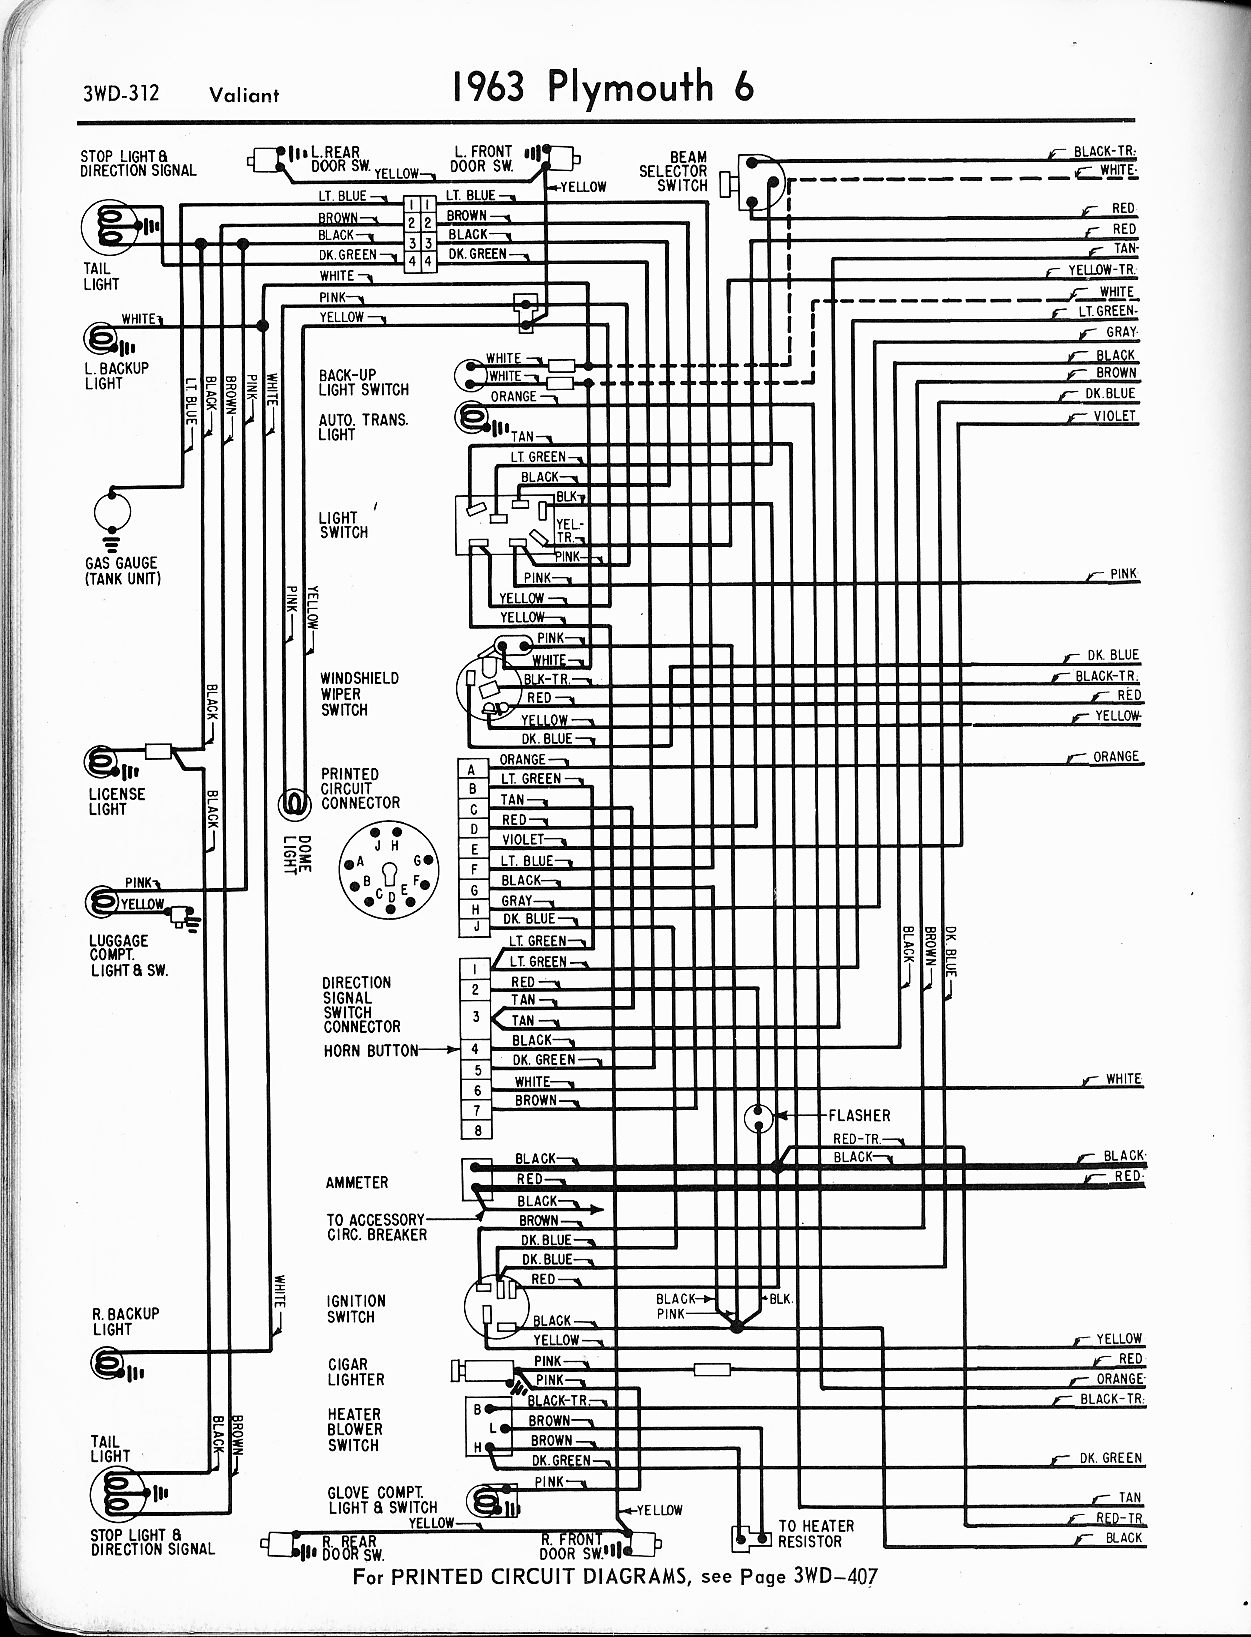 66 Bronco Carburetor Diagram Free Download Wiring Schematic Bissell 9e02 Parts List And Ereplacementpartscom 1975 Plymouth Valiant Enthusiast Rh Rasalibre Co